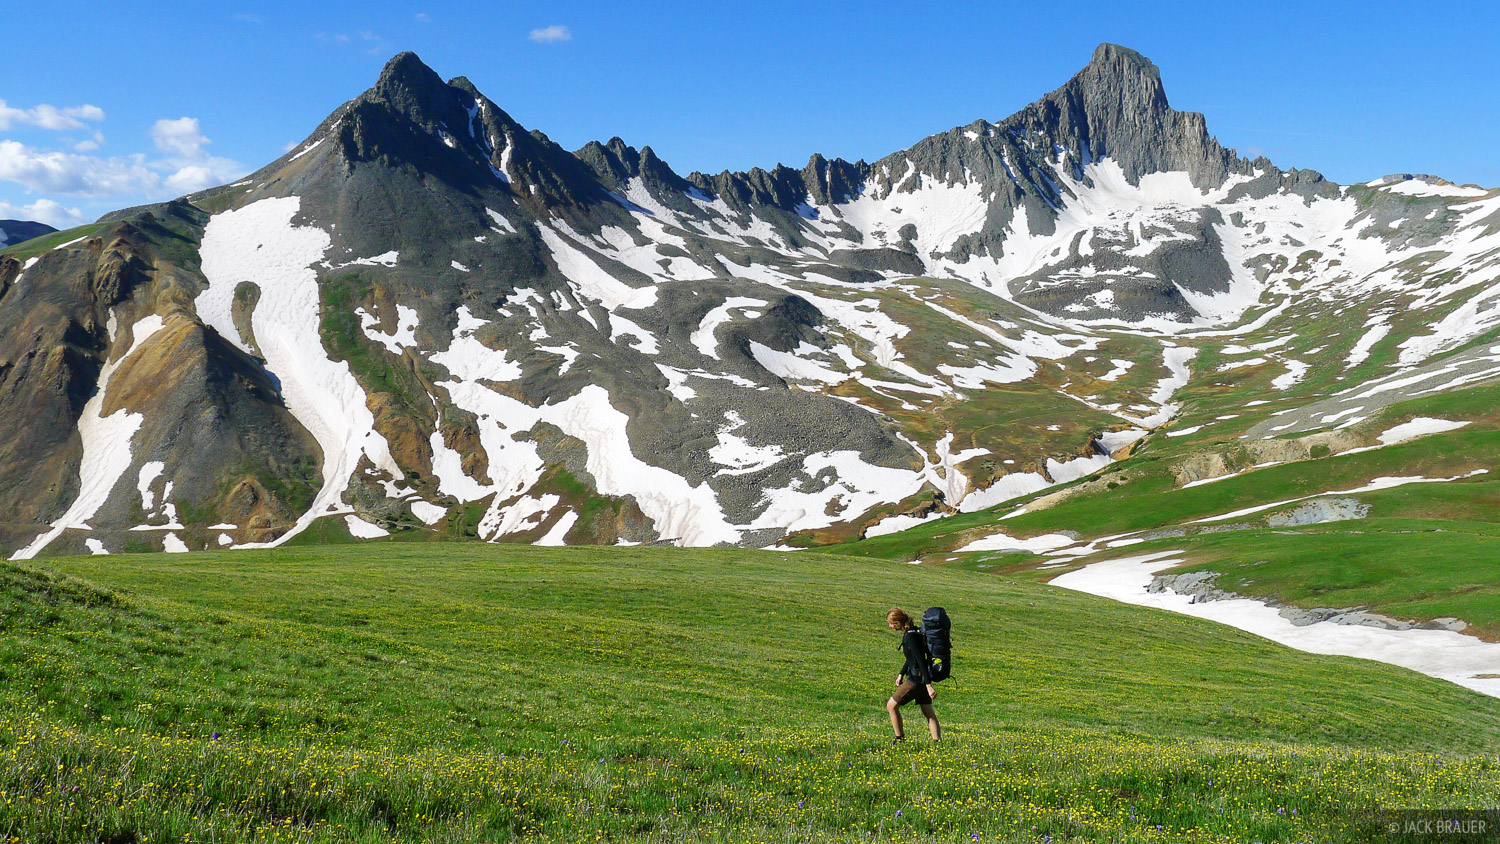 Wetterhorn Peak, hiking, tundra, Uncompahgre Wilderness, Colorado, photo